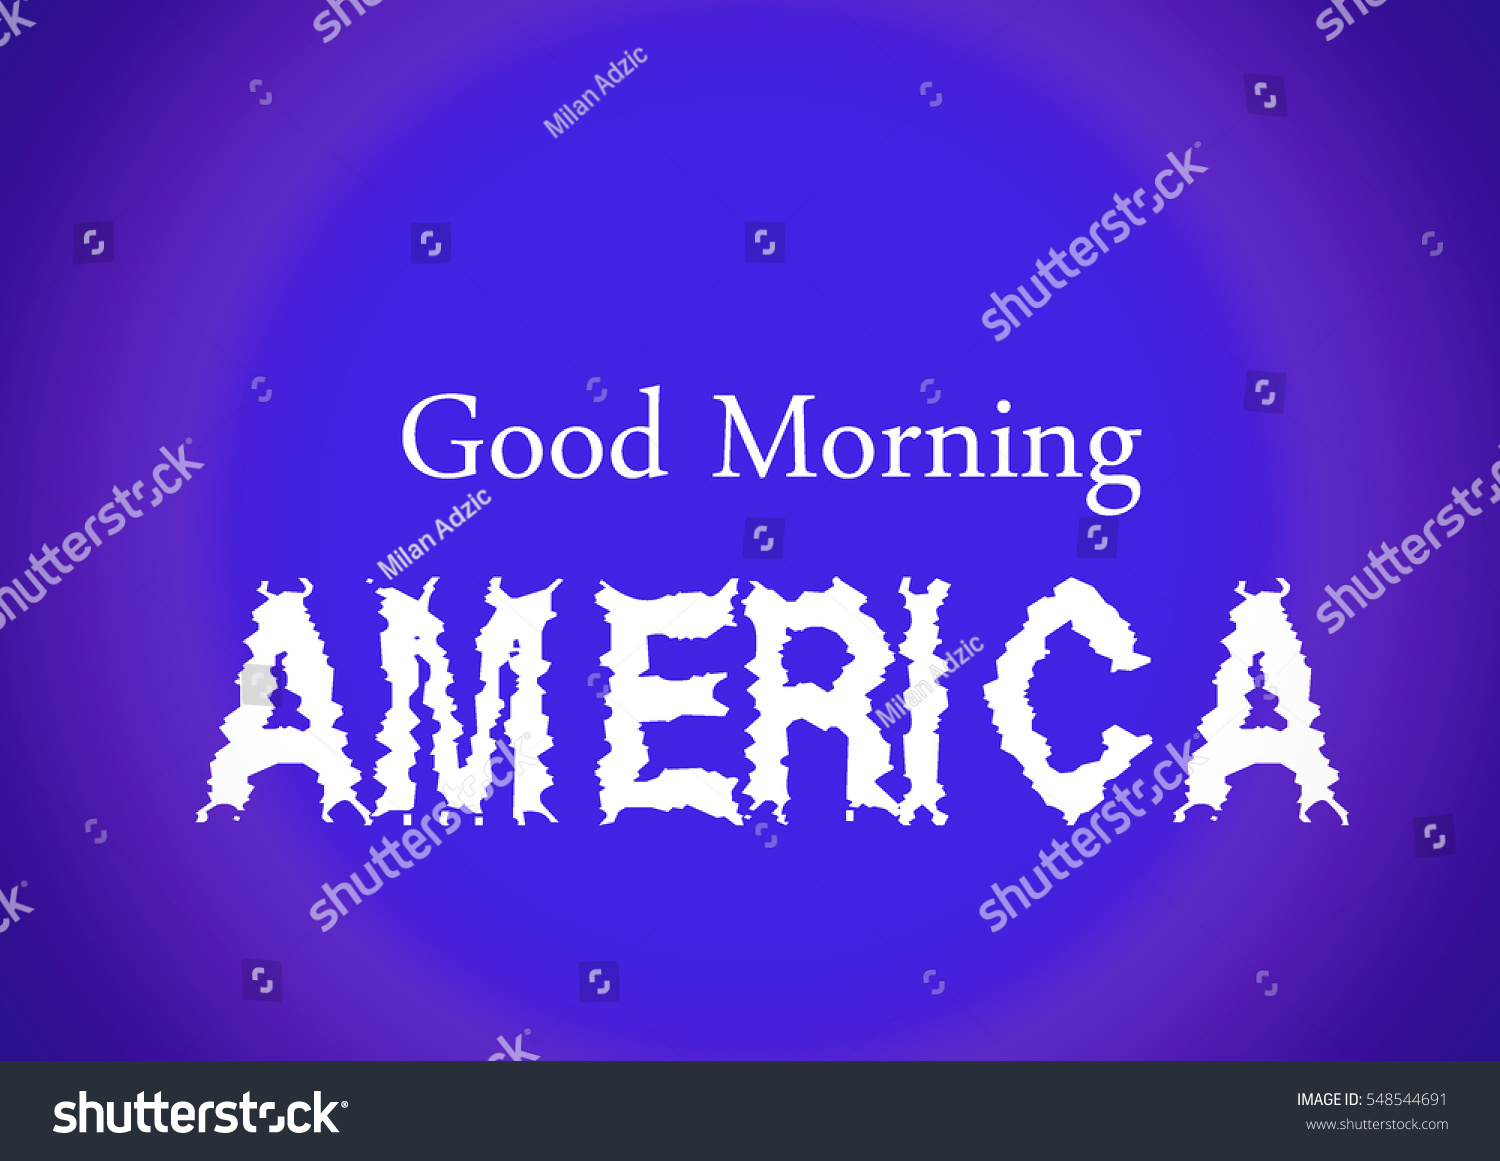 Good Morning America Quotes Images : Good morning america purple background white stock